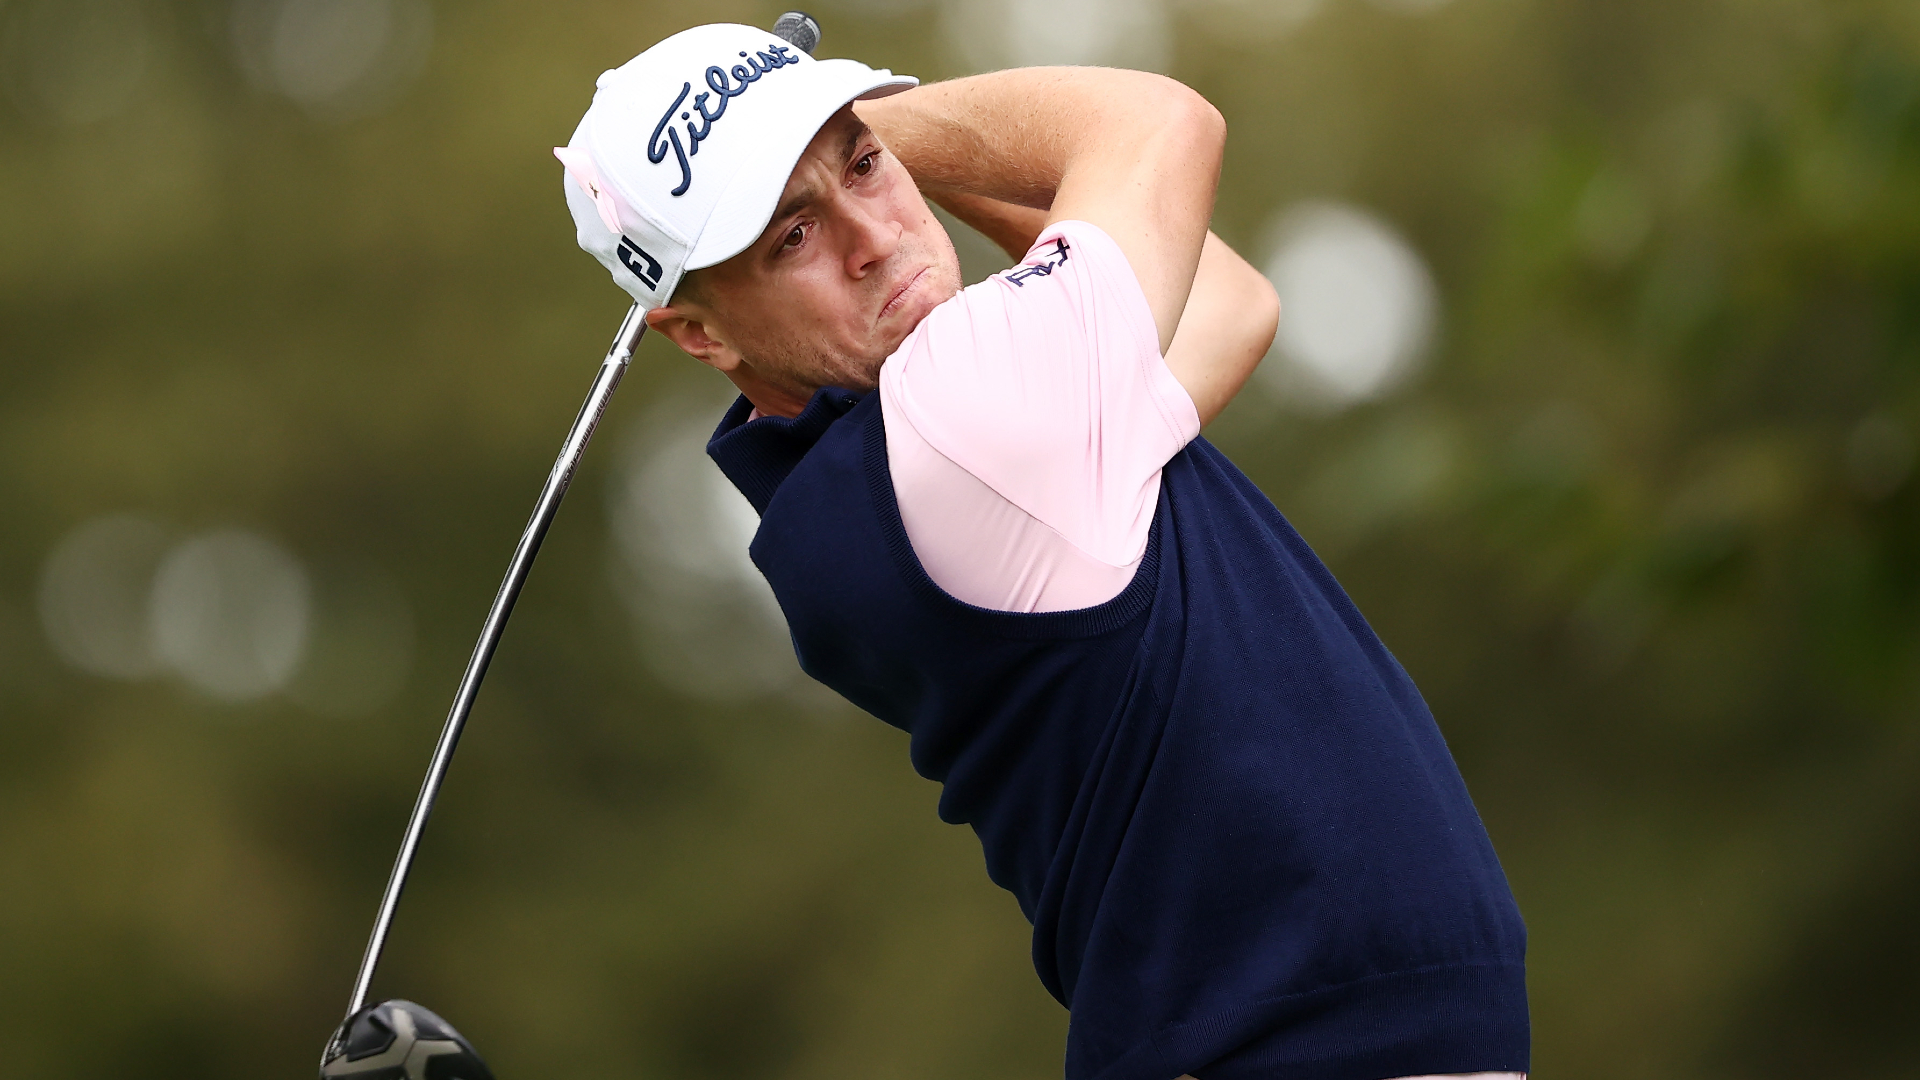 Thomas leads as Rahm surges into contention in California